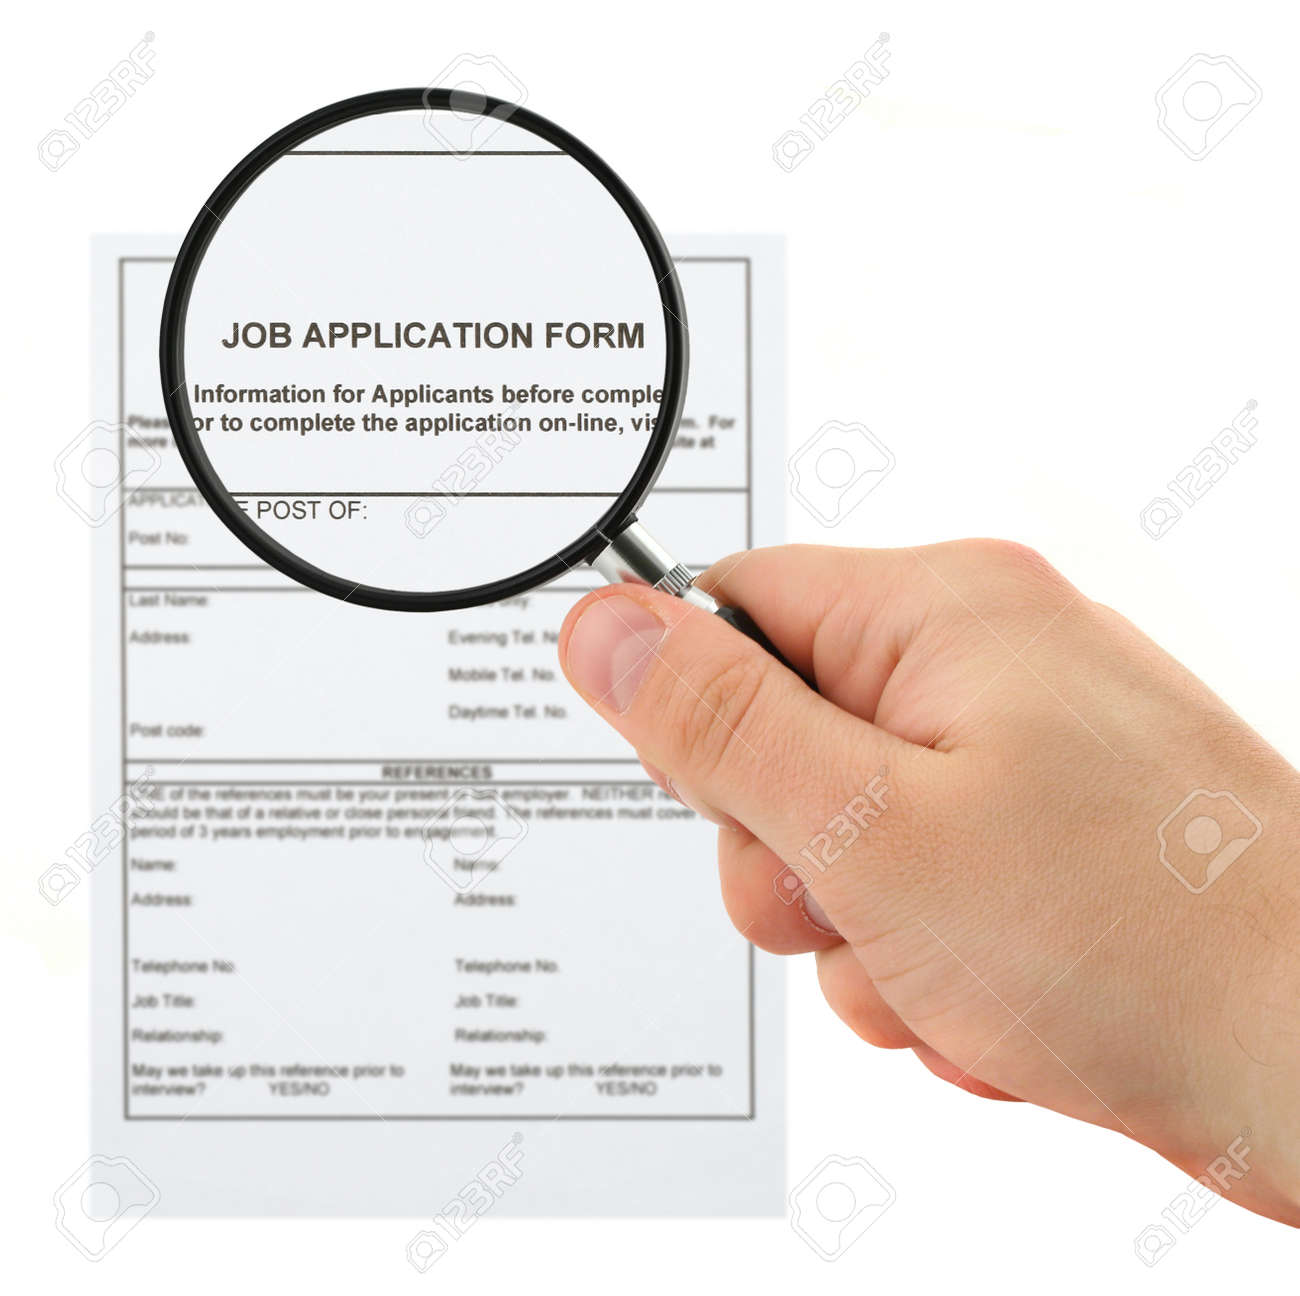 Lowes home improvement is hiring 652 seasonal employees in the lowes job application form gallery form example ideas lowes job application form choice image form example falaconquin